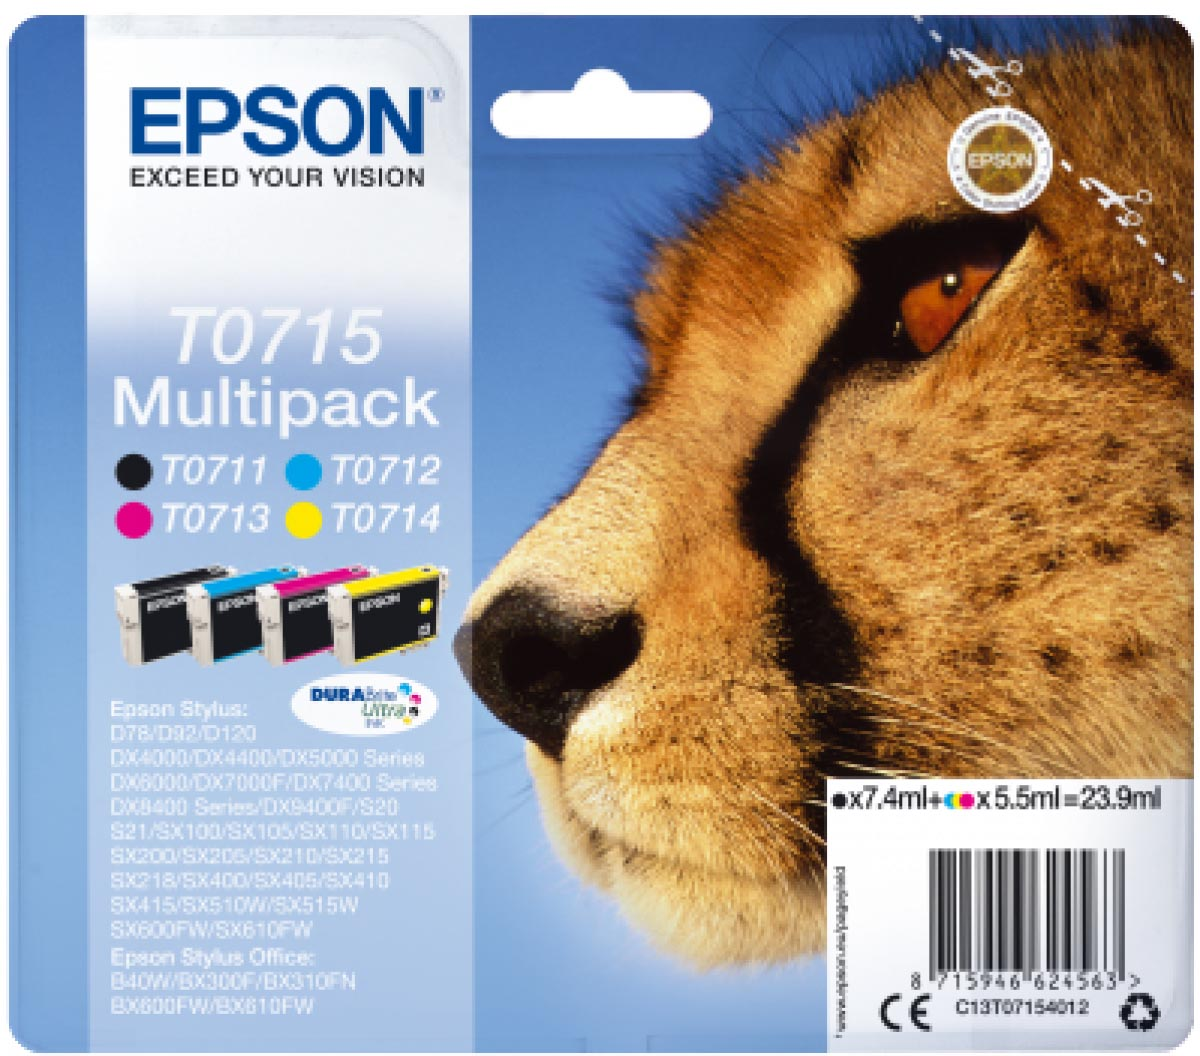 Multipack de tinta original Epson T0715 Guepardo 4 colores